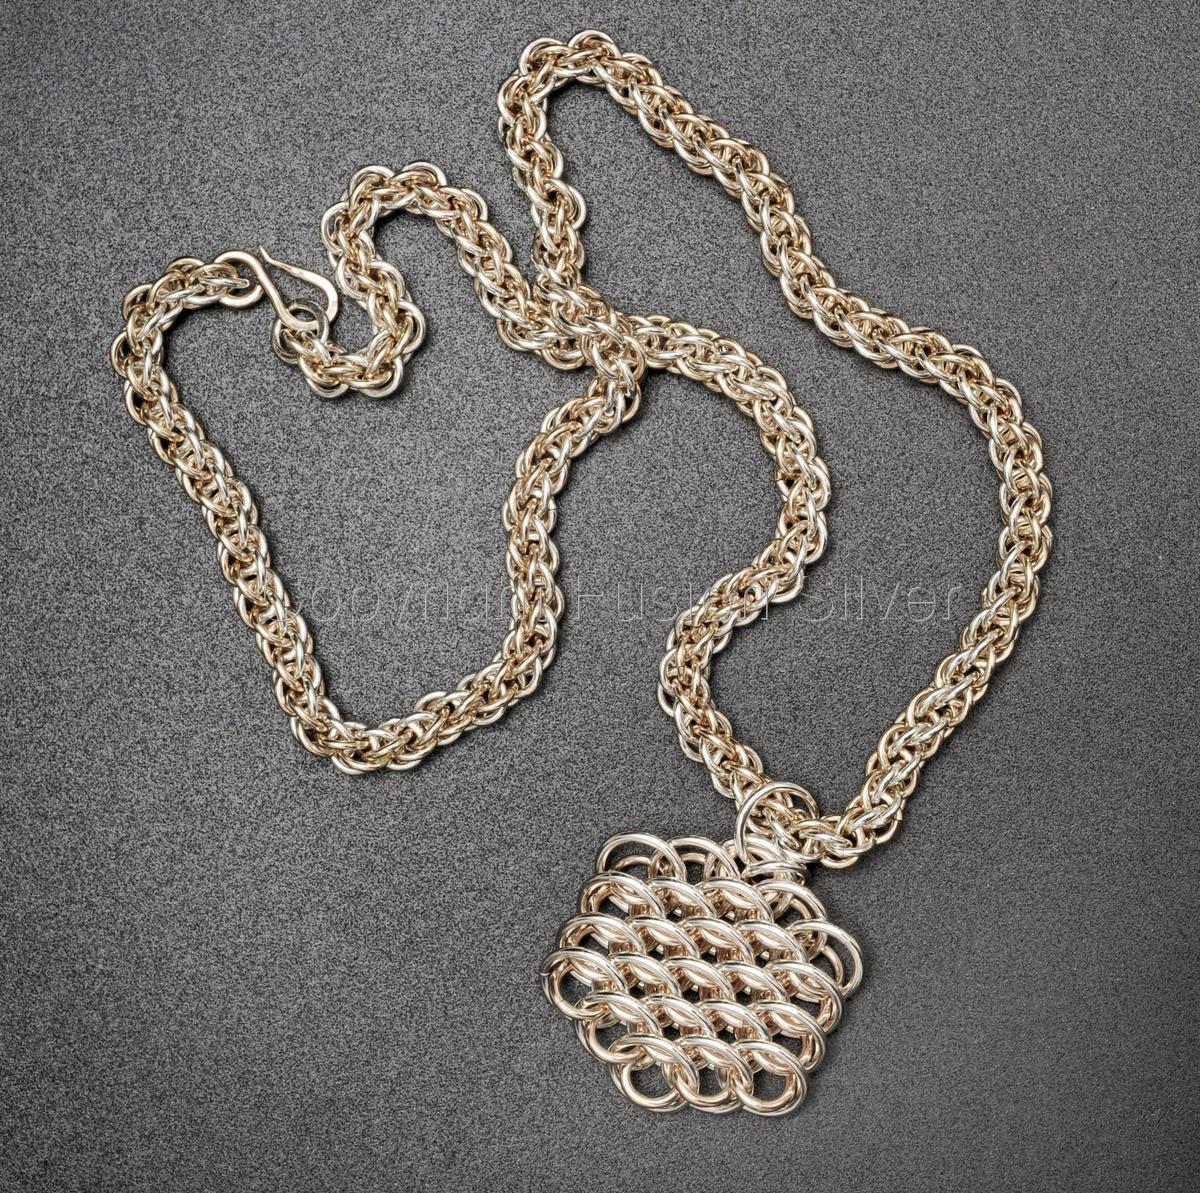 Jens Pind 6-in-1 Necklace, 2 tone, silver and gold (large view)